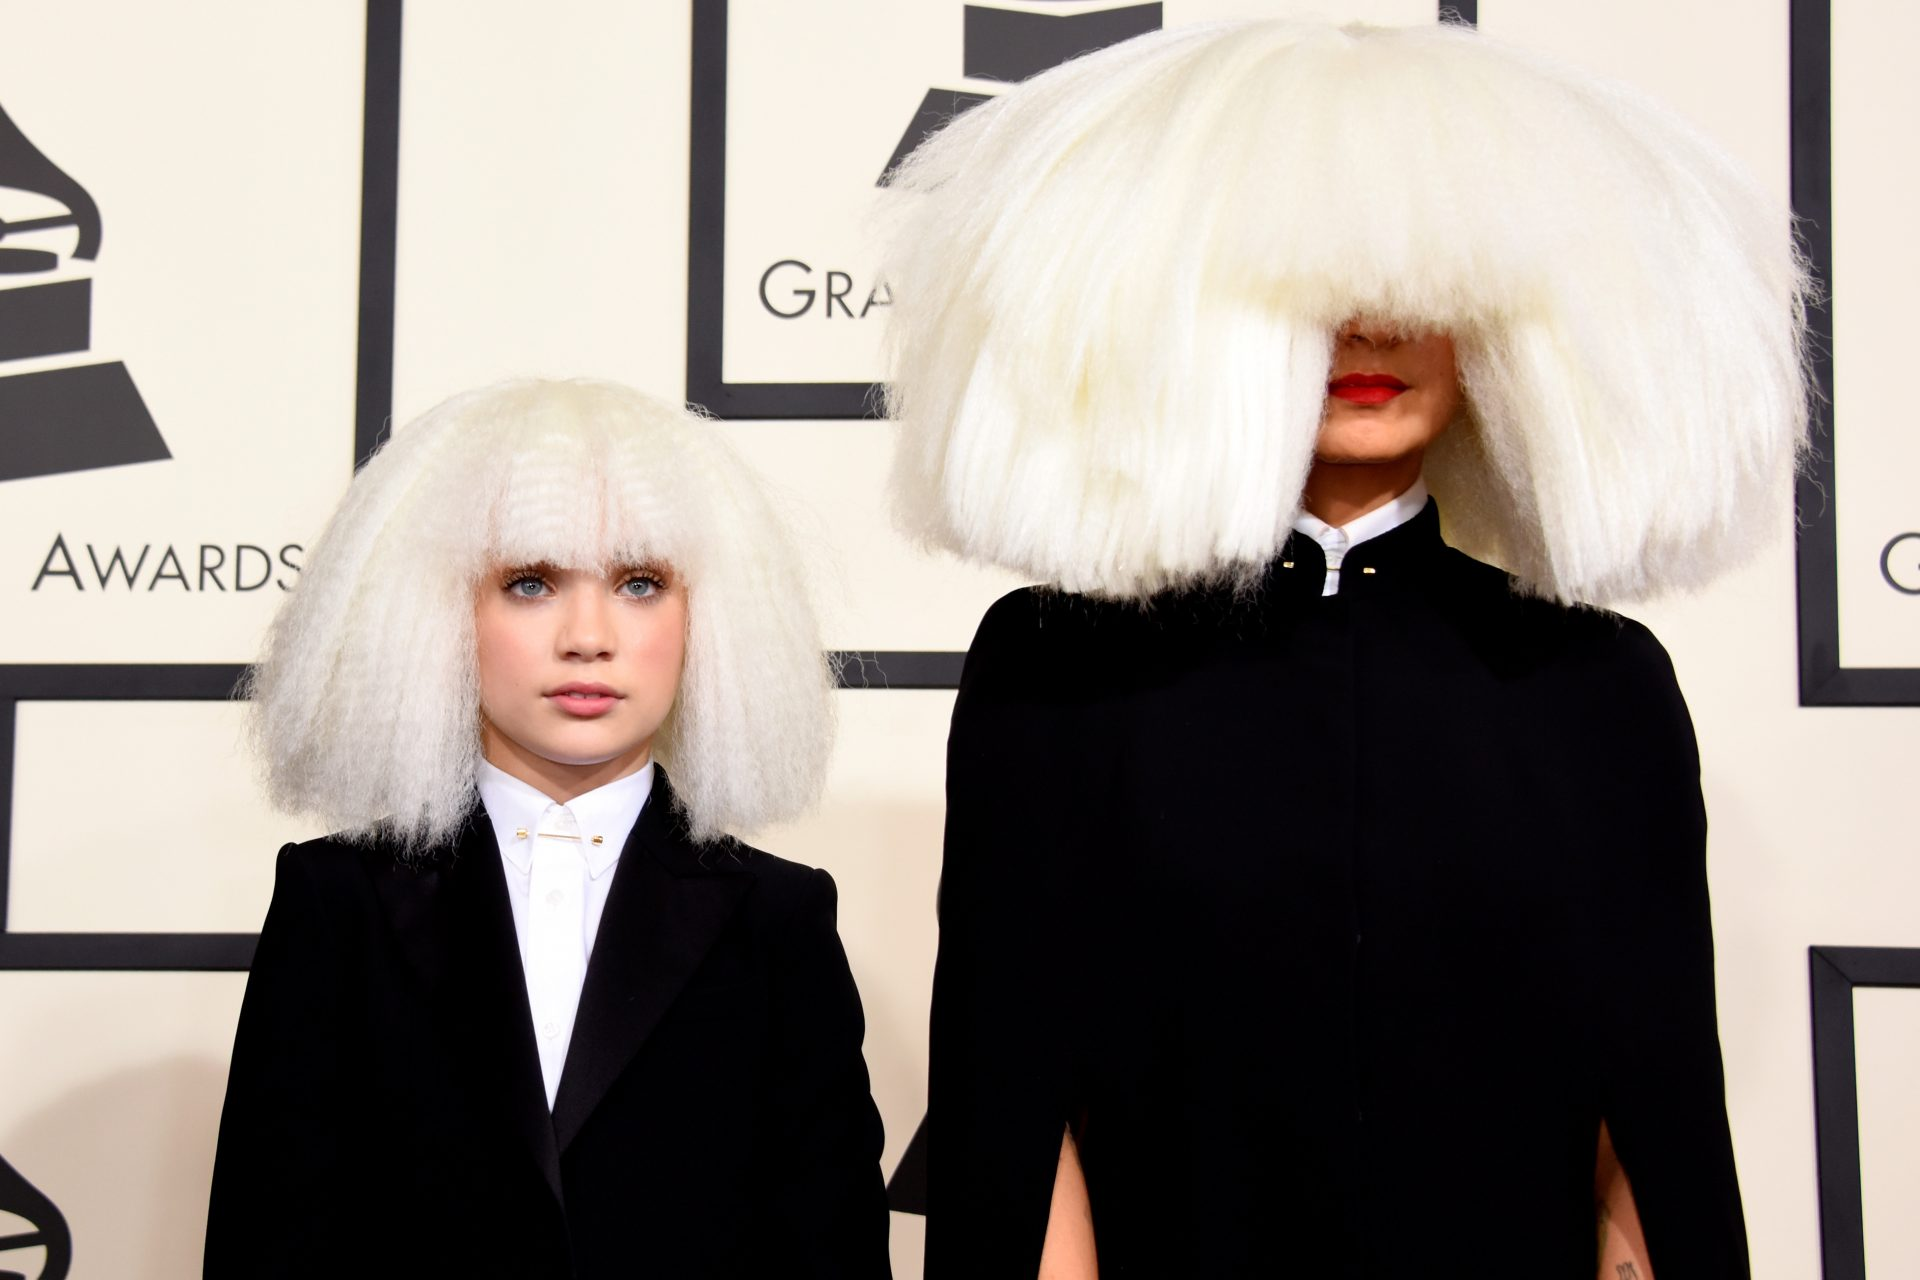 The little girl from Sia's music videos: this is Maddie Ziegler today